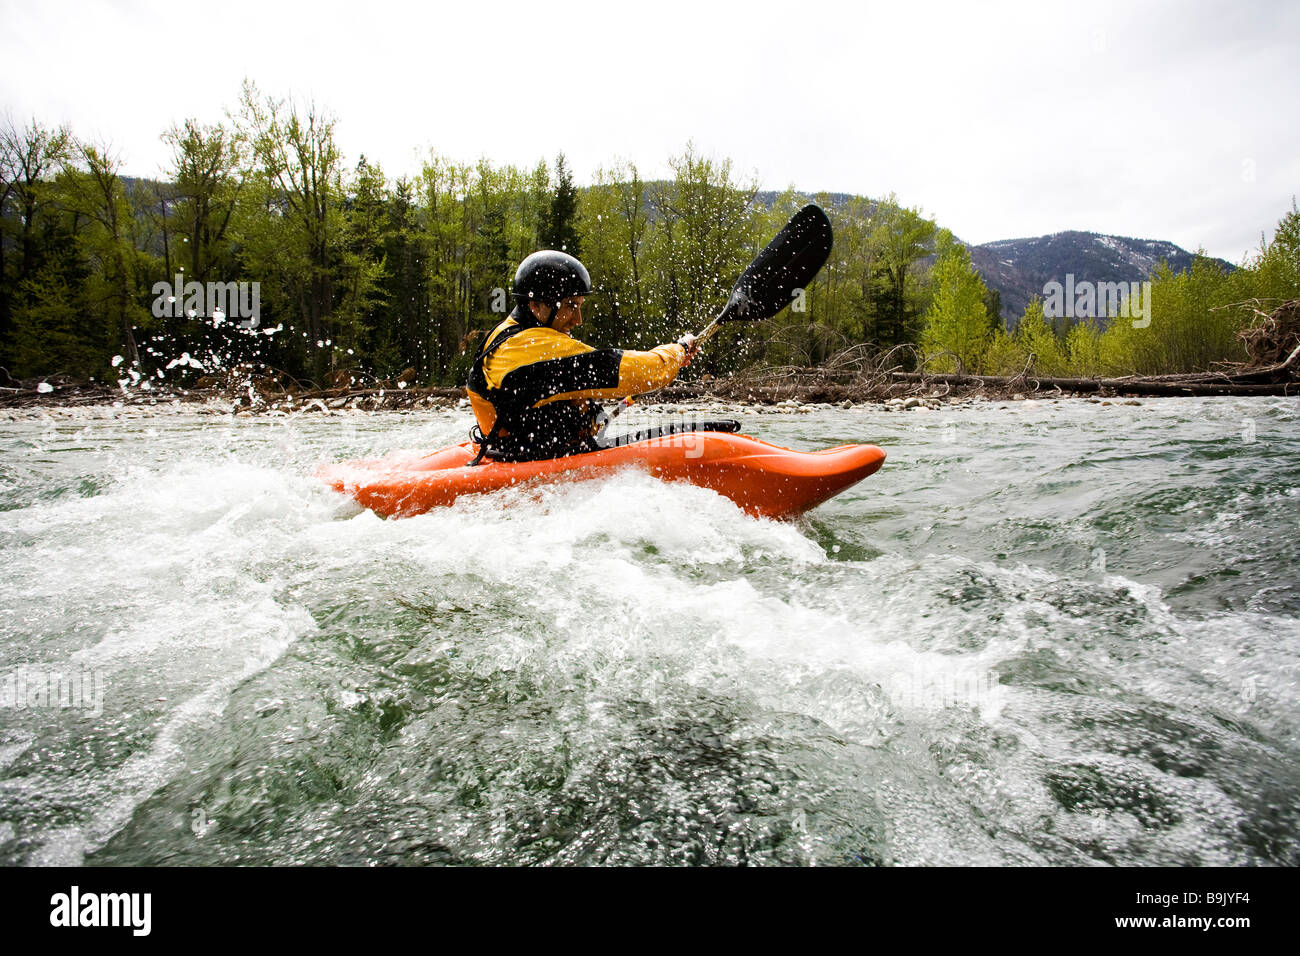 A playboater enjoys a small wave on a river. Stock Photo